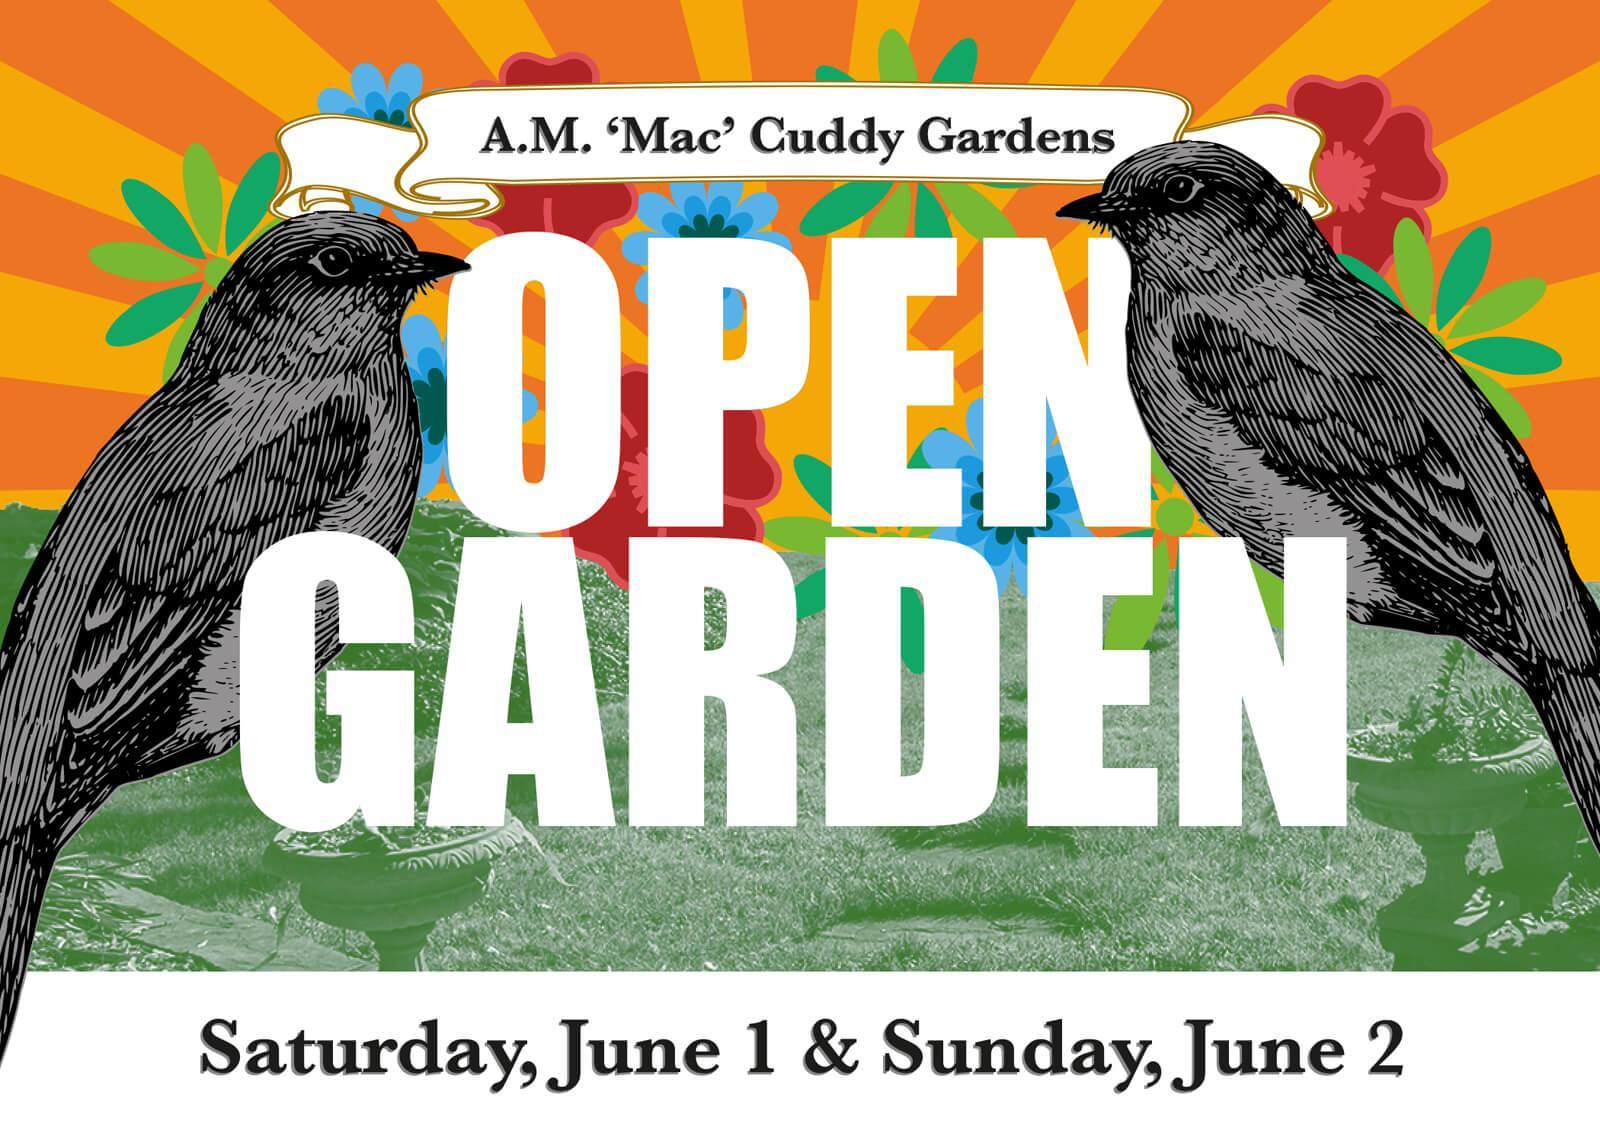 Cuddy Gardens Open Garden and Plant Sale 2019